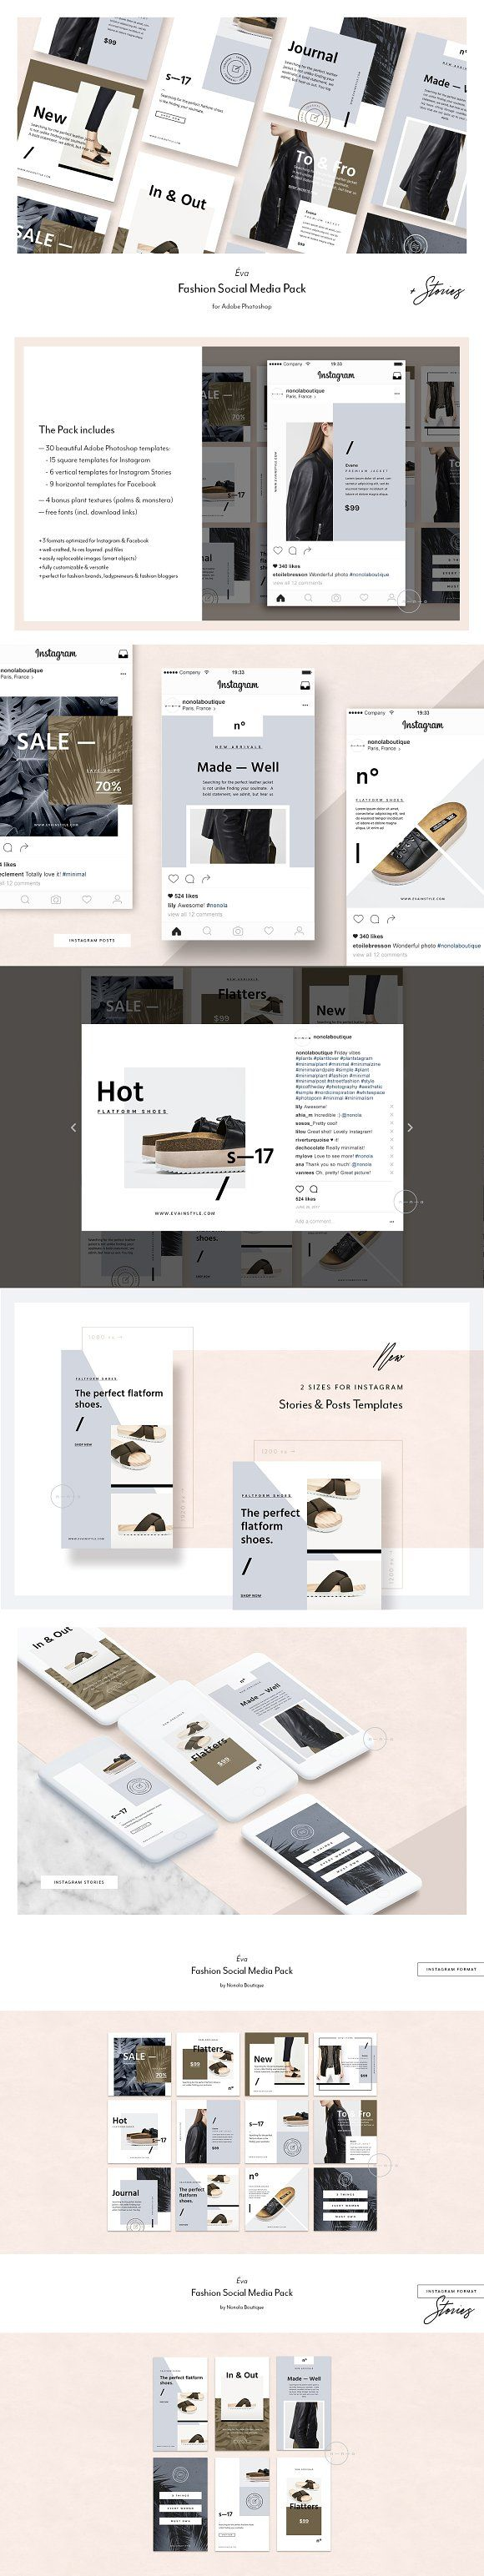 Fashion Social Media Pack • Éva by Nonola on ...